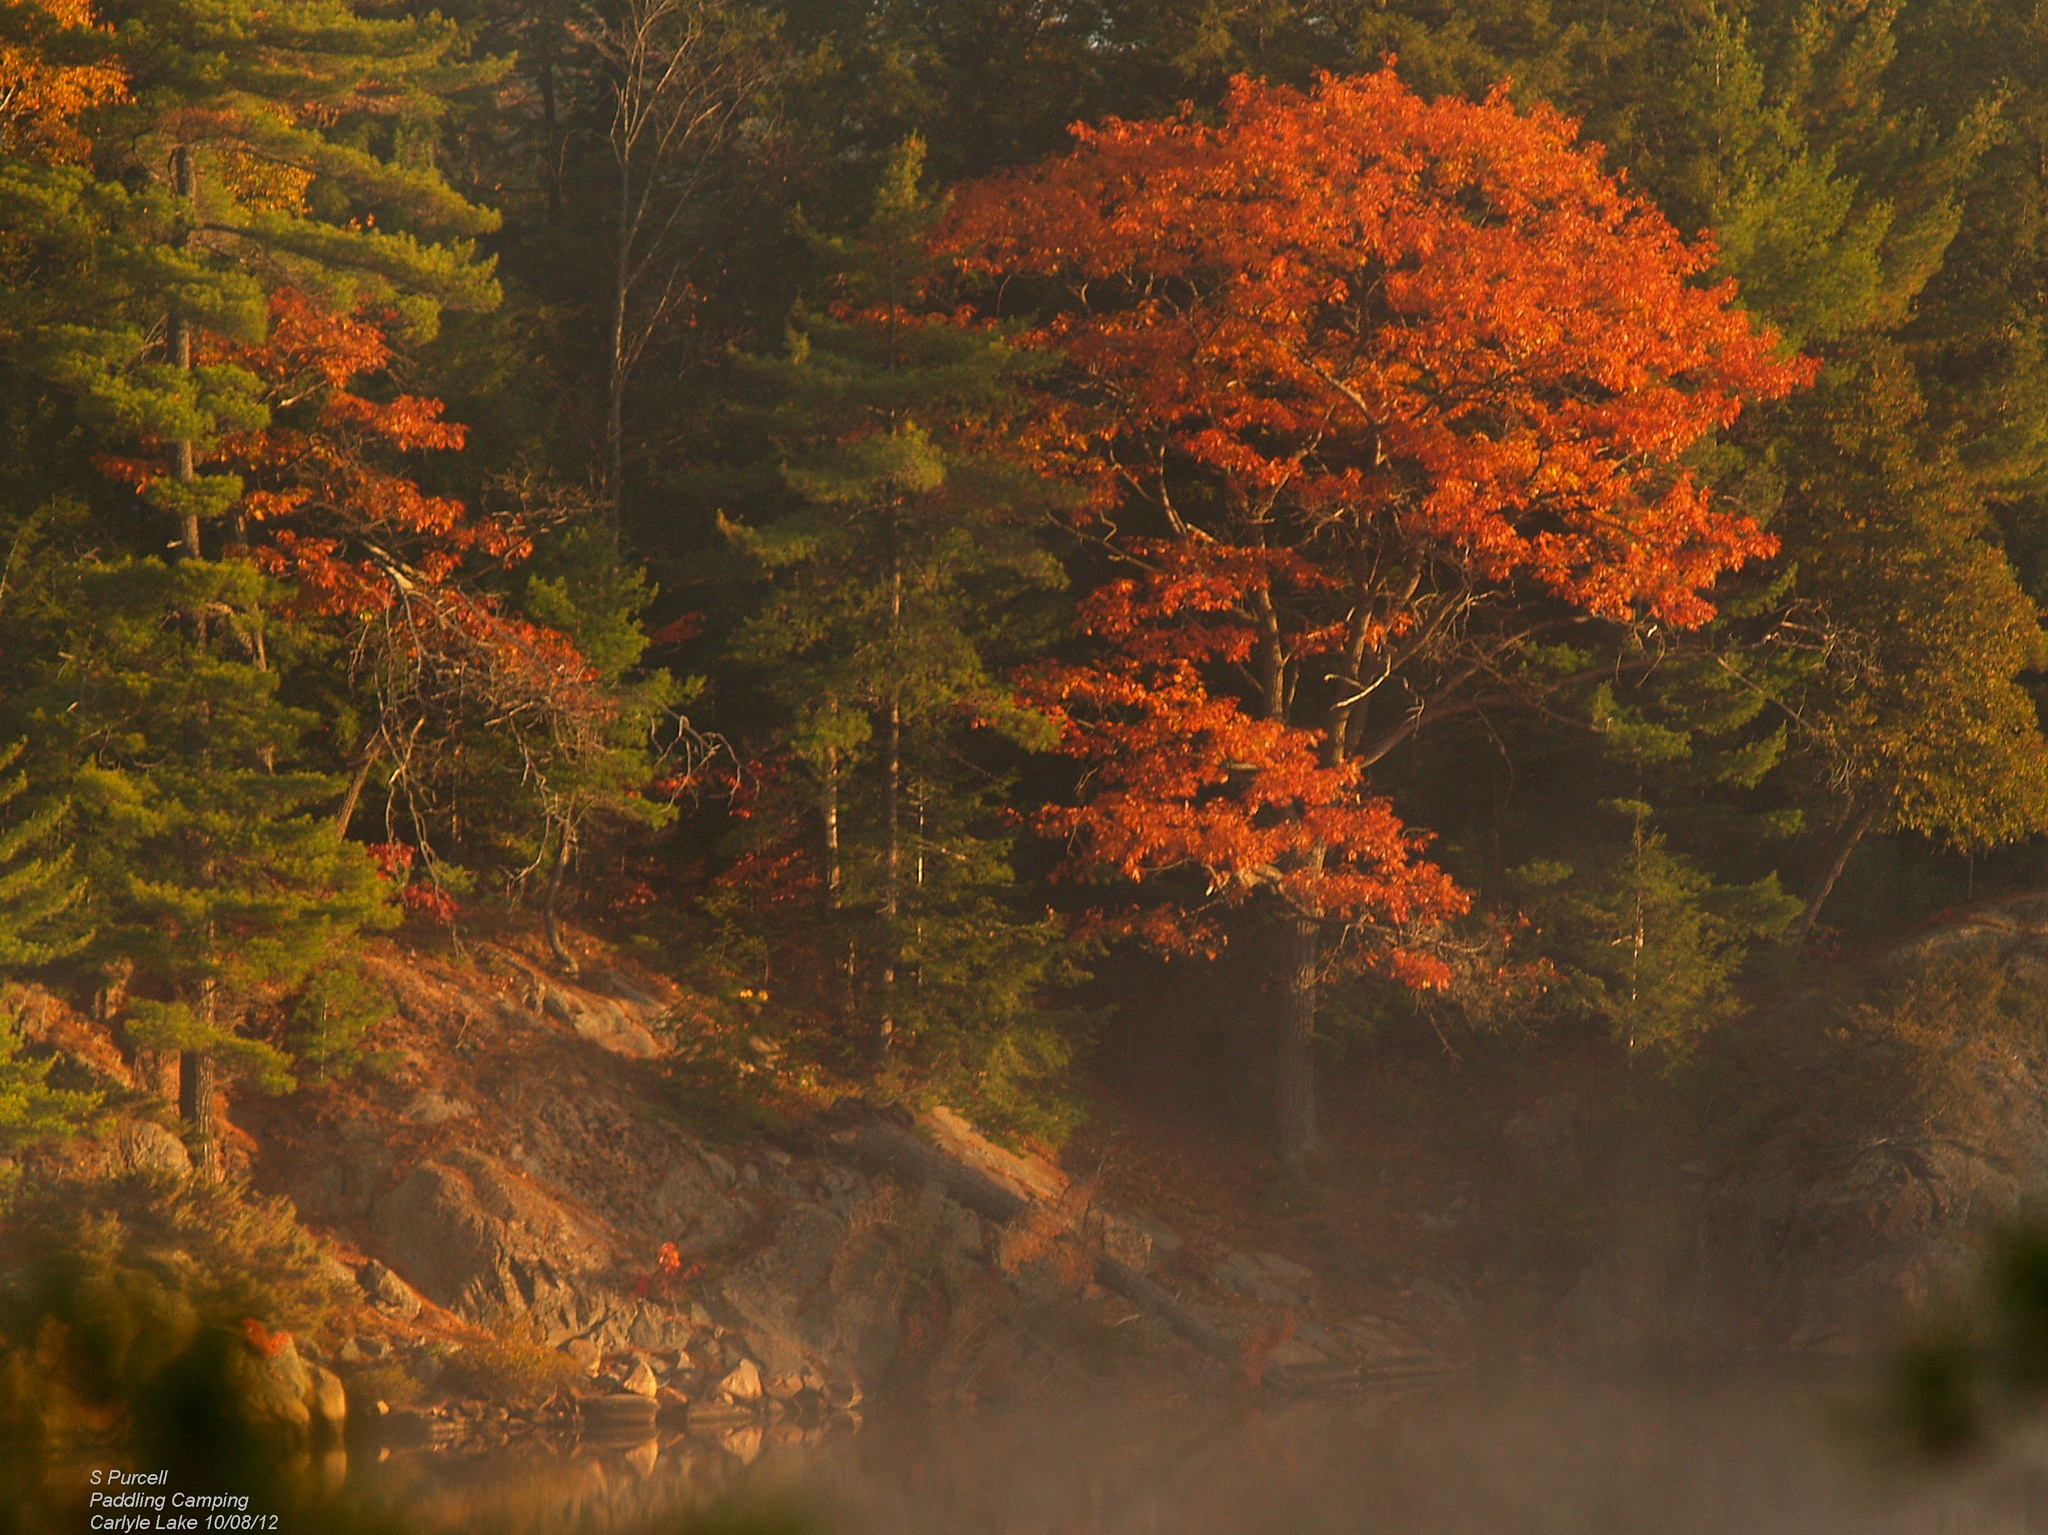 Fall's mists by Sean Purcell